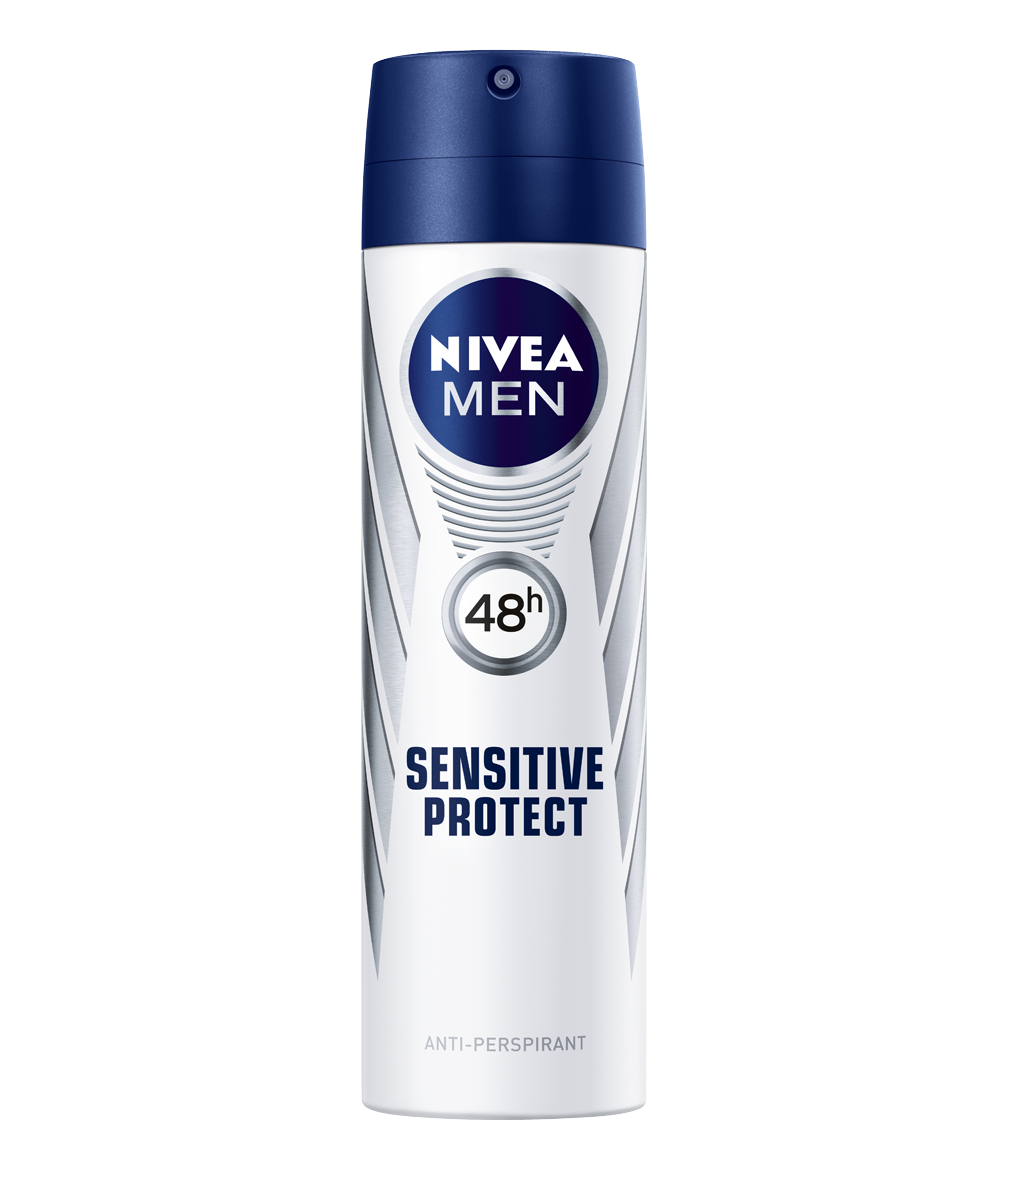 Nivea Sensitive Protect